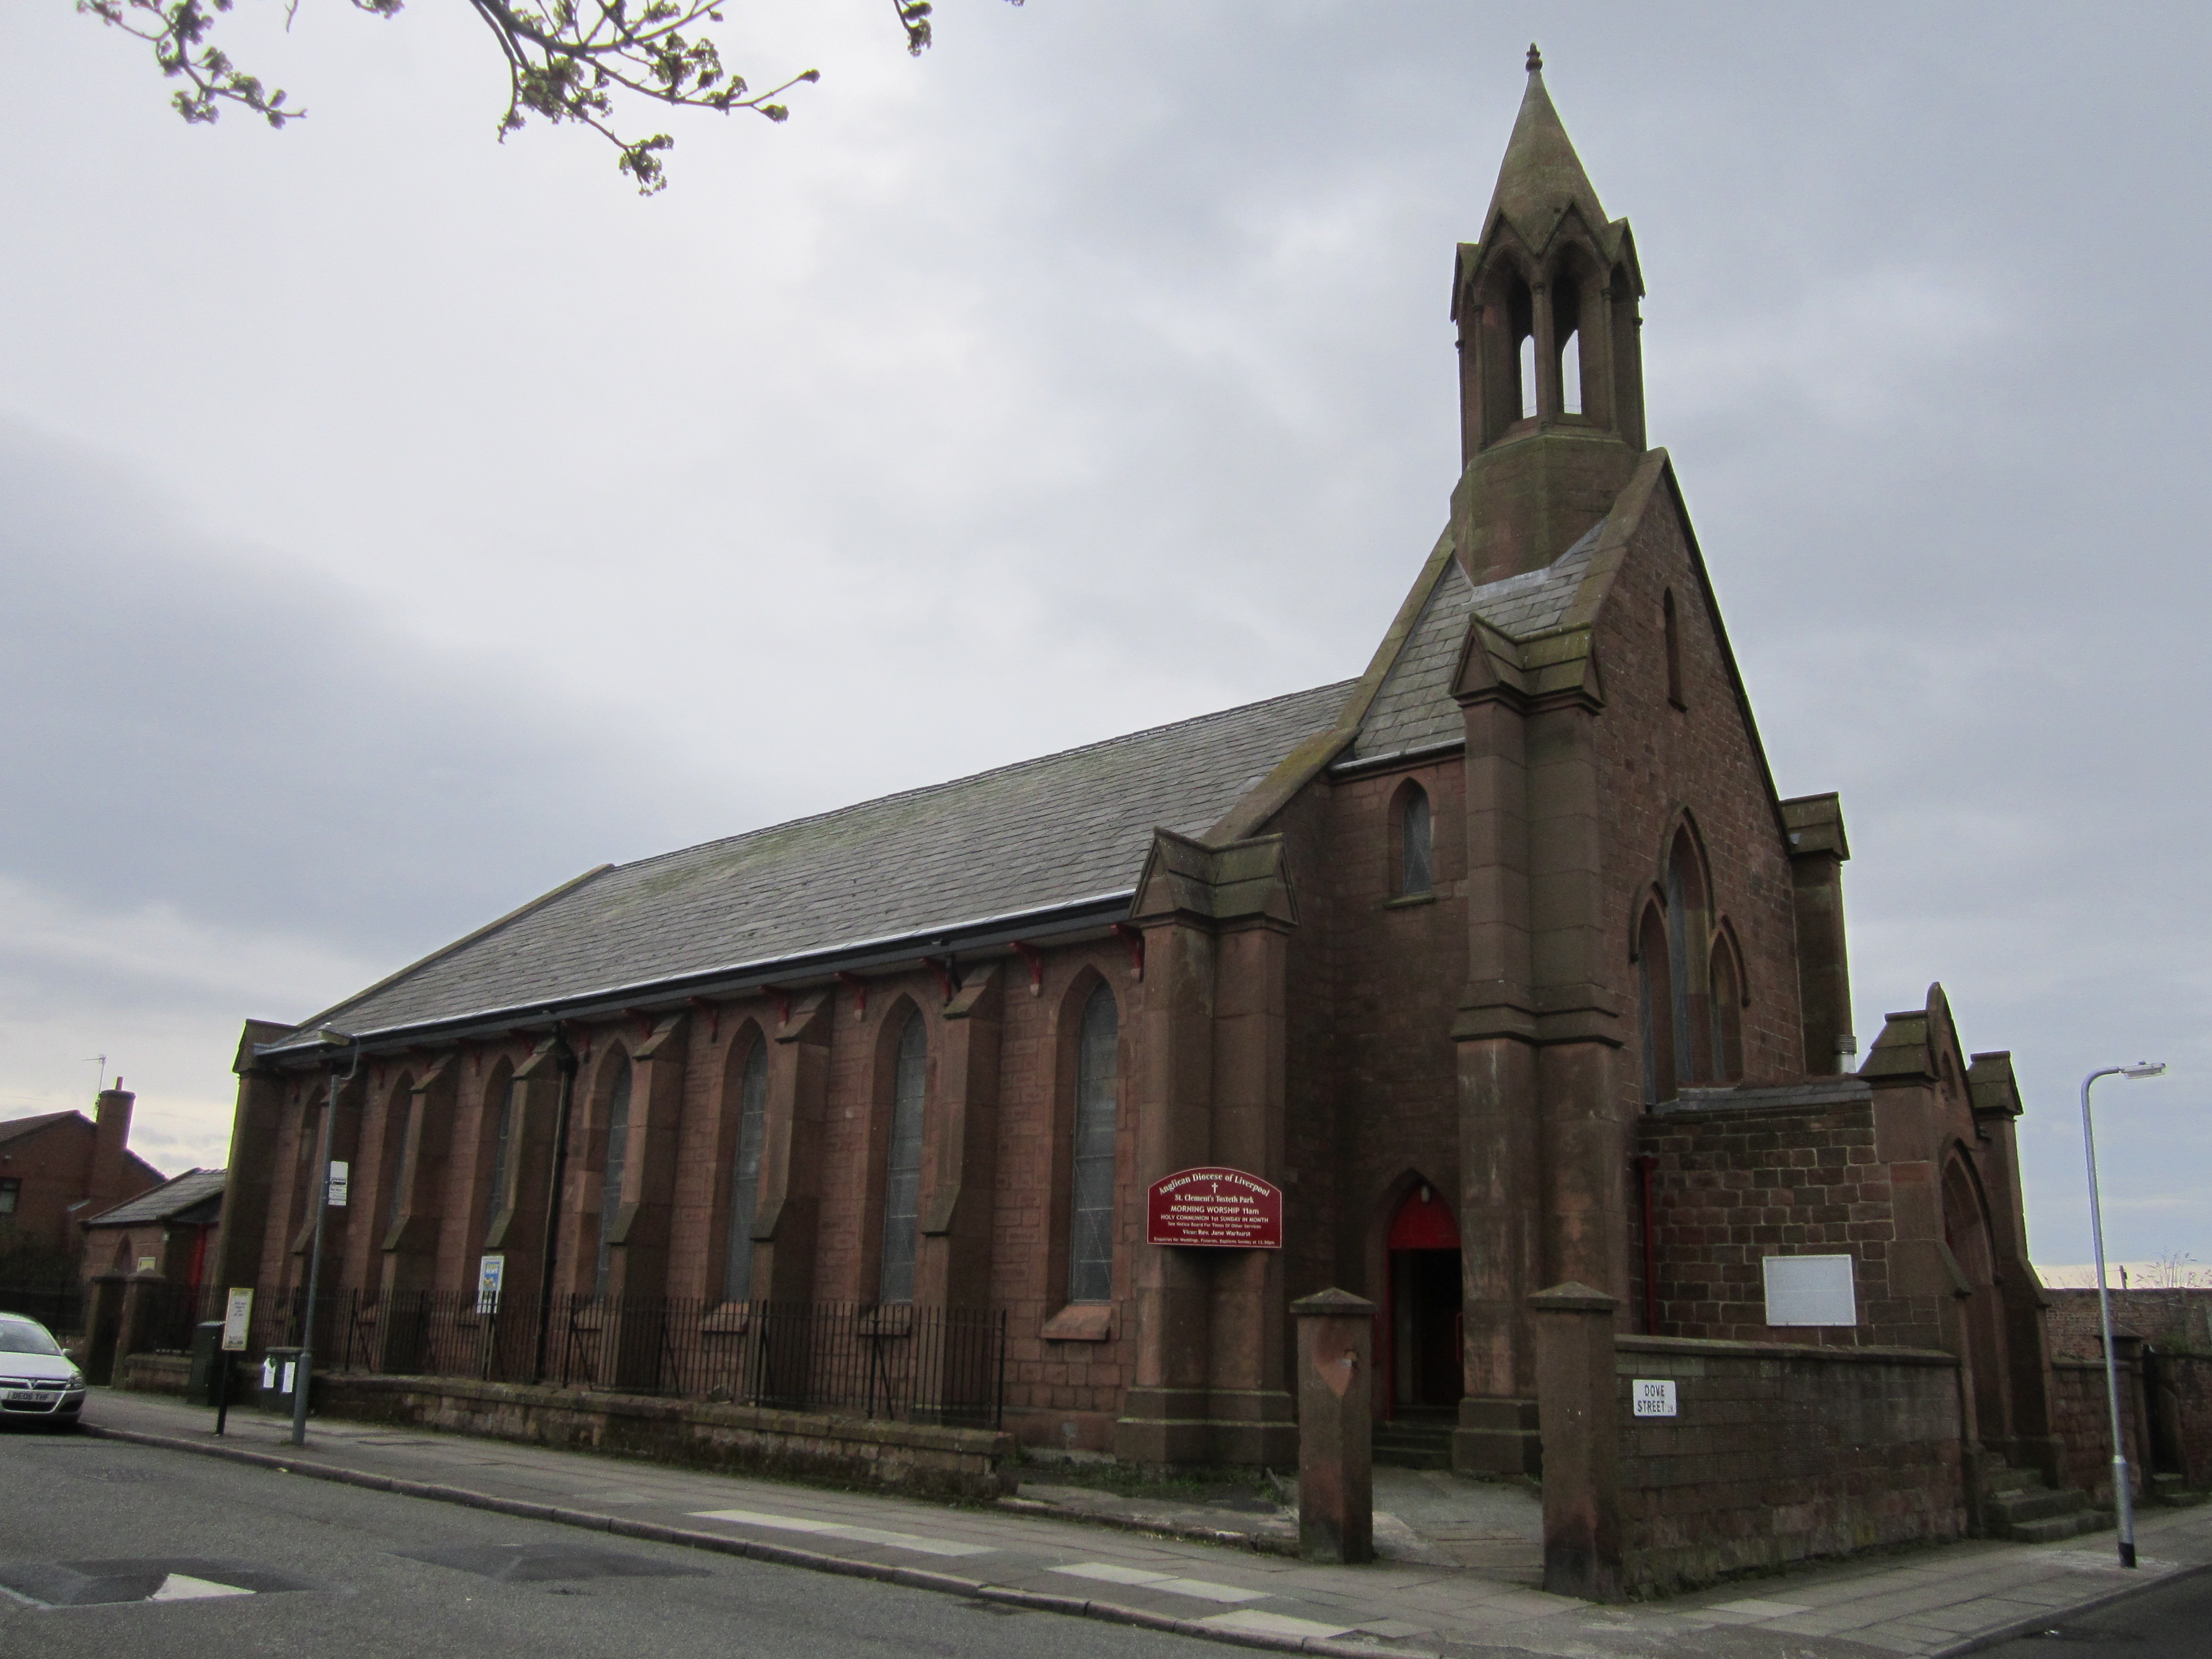 File:St Clement's Church, Toxteth (5).JPG - Wikimedia Commons